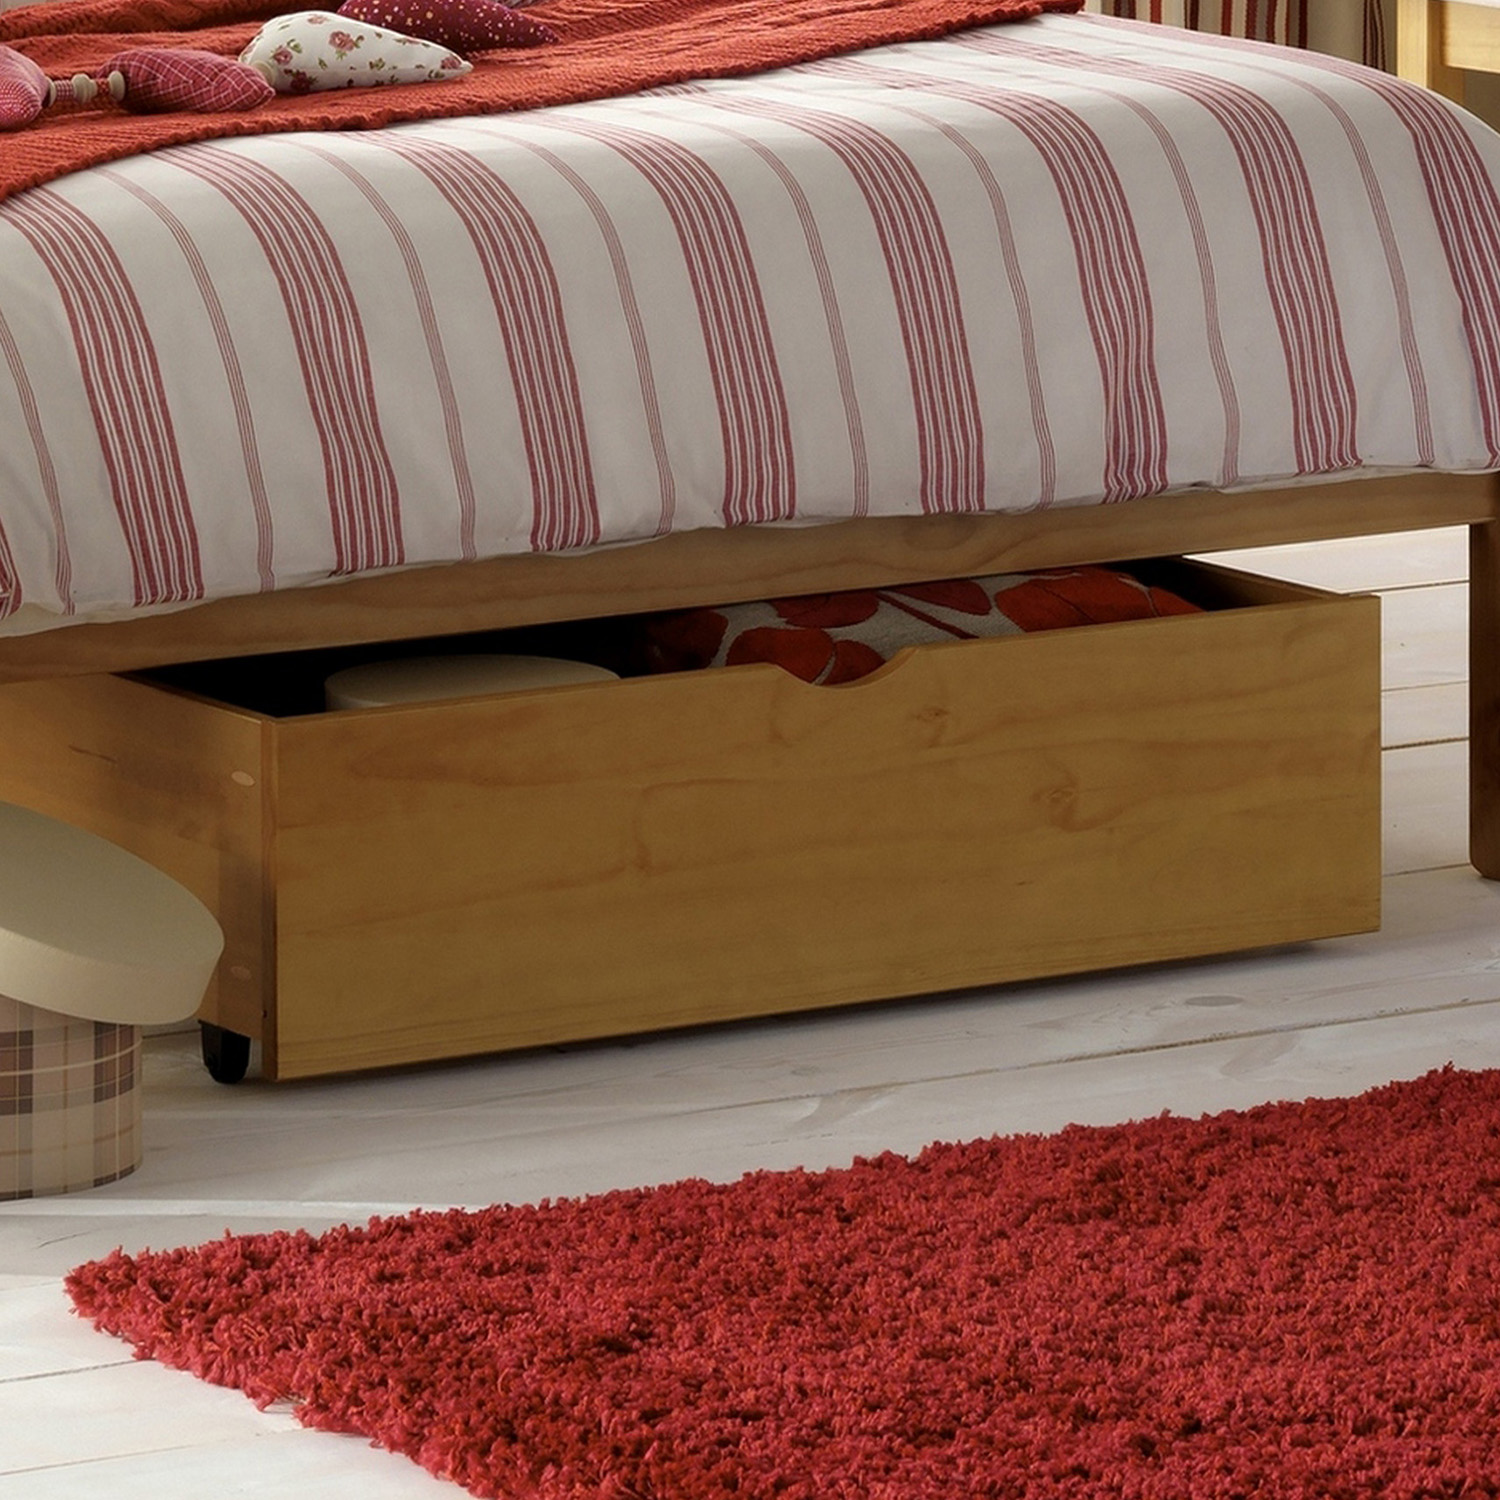 Picture of: Diy Storage Bed Drawers Large